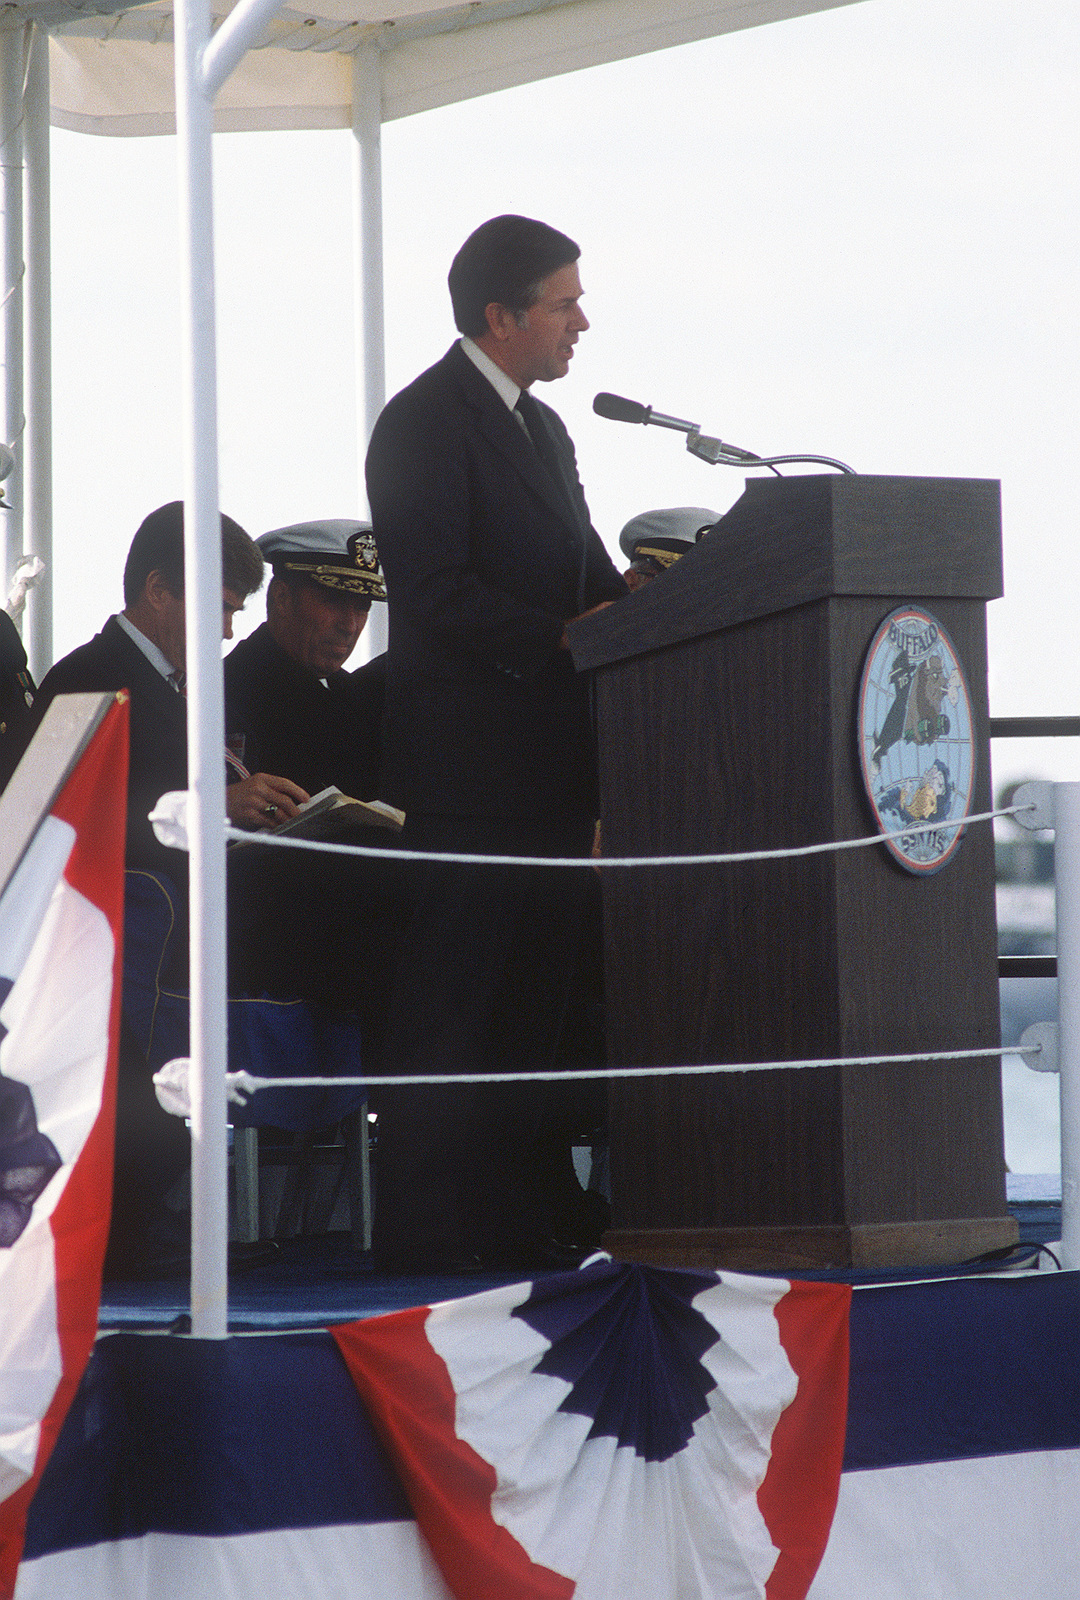 A distinguished guest speaks during the commissioning ceremony for the nuclear-powered attack submarine USS BUFFALO (SSN 715)